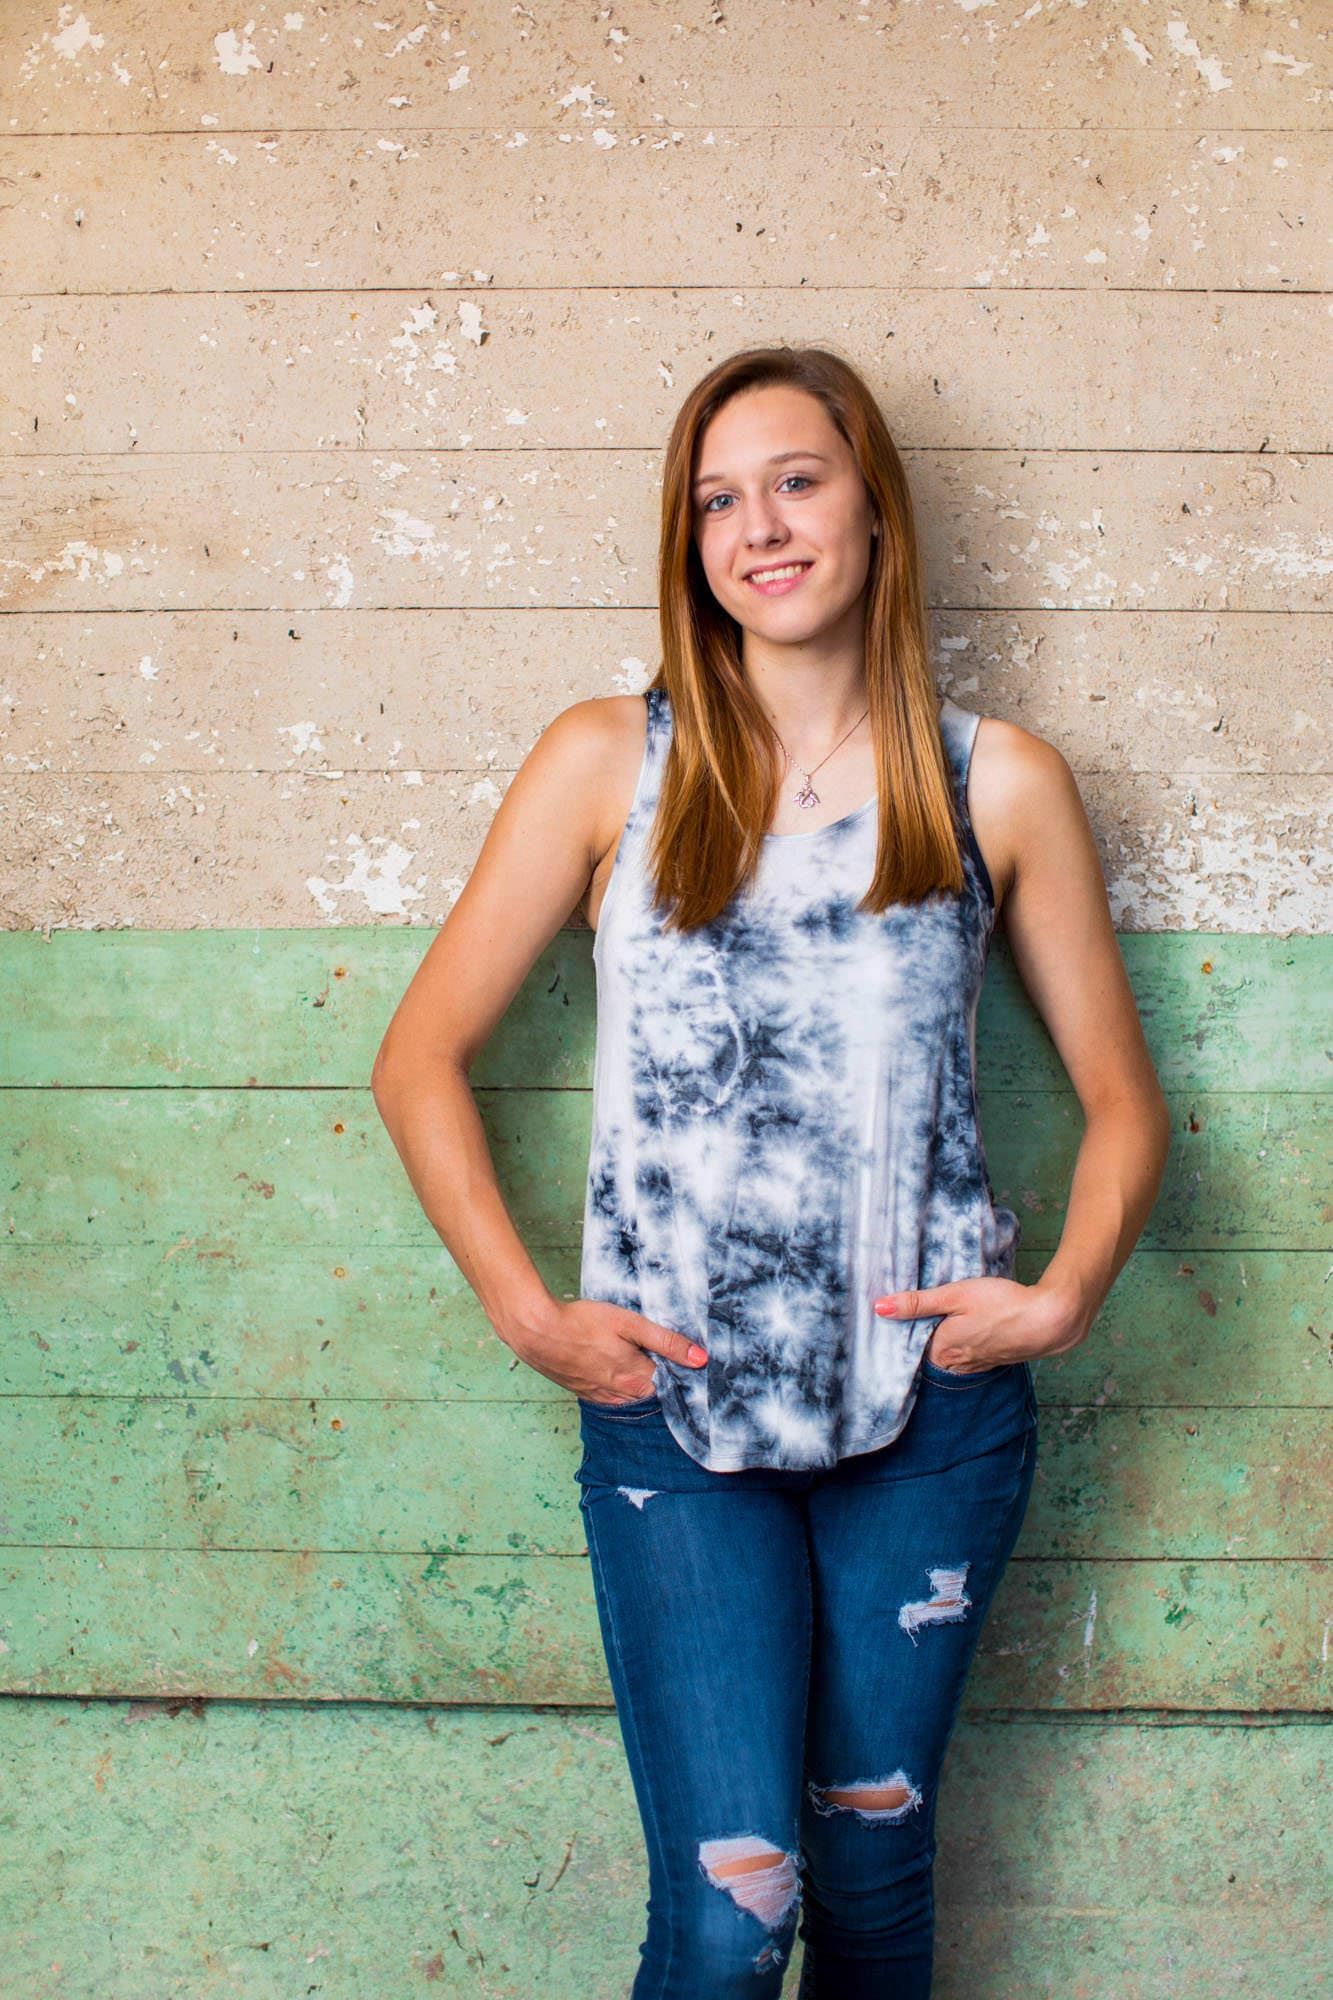 Senior Portraits with Gracie Baker in Taneytown Maryland with Photographer Kelly Heck